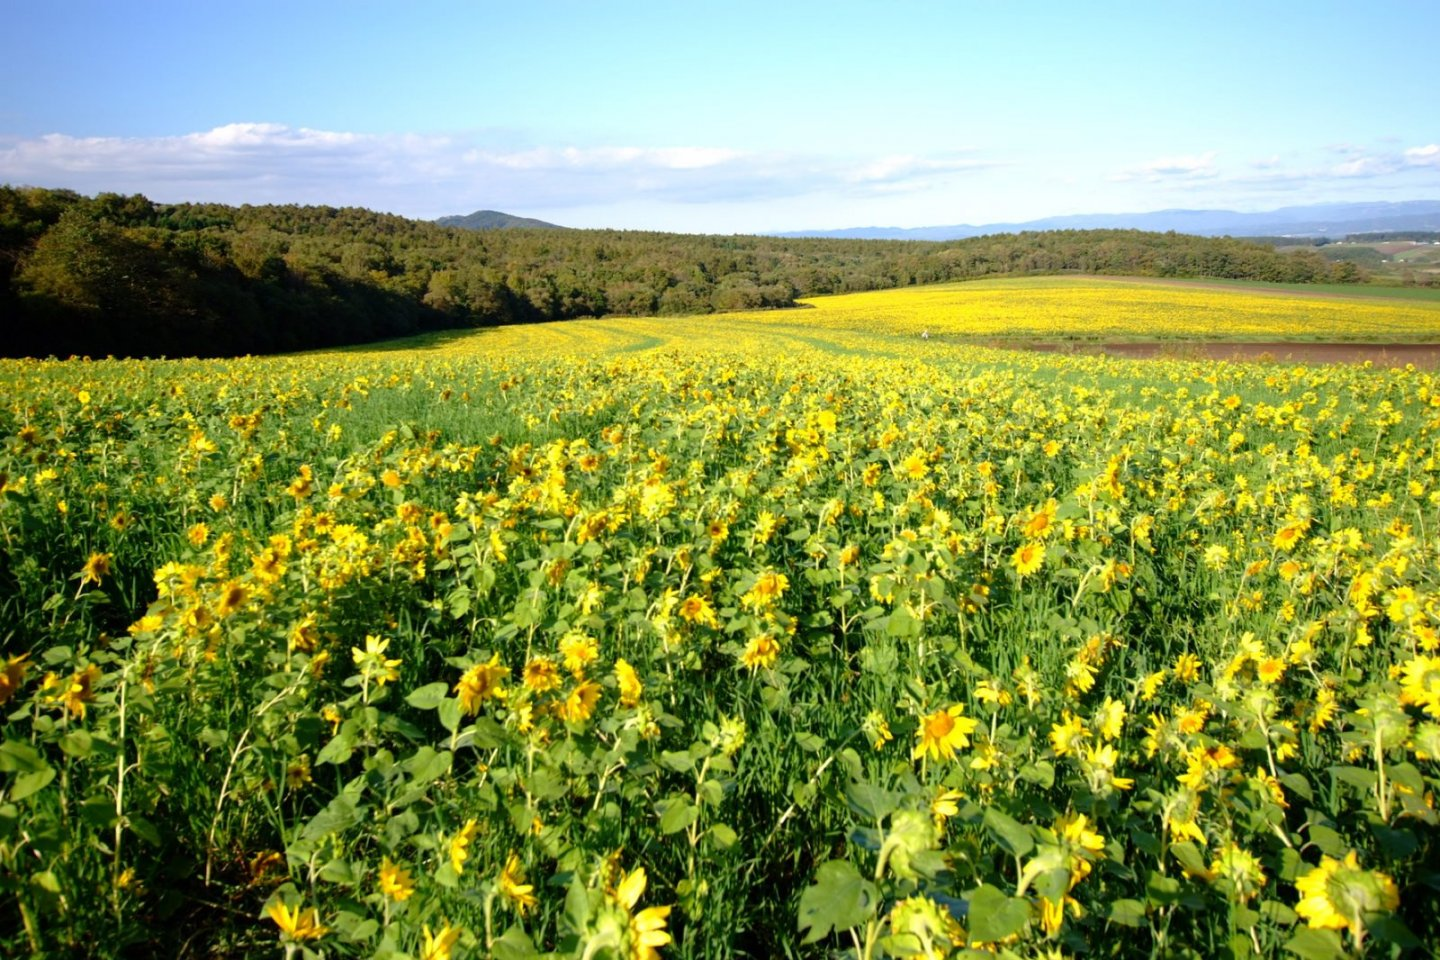 Sunflowers as far as the eye can see at Palette Hill